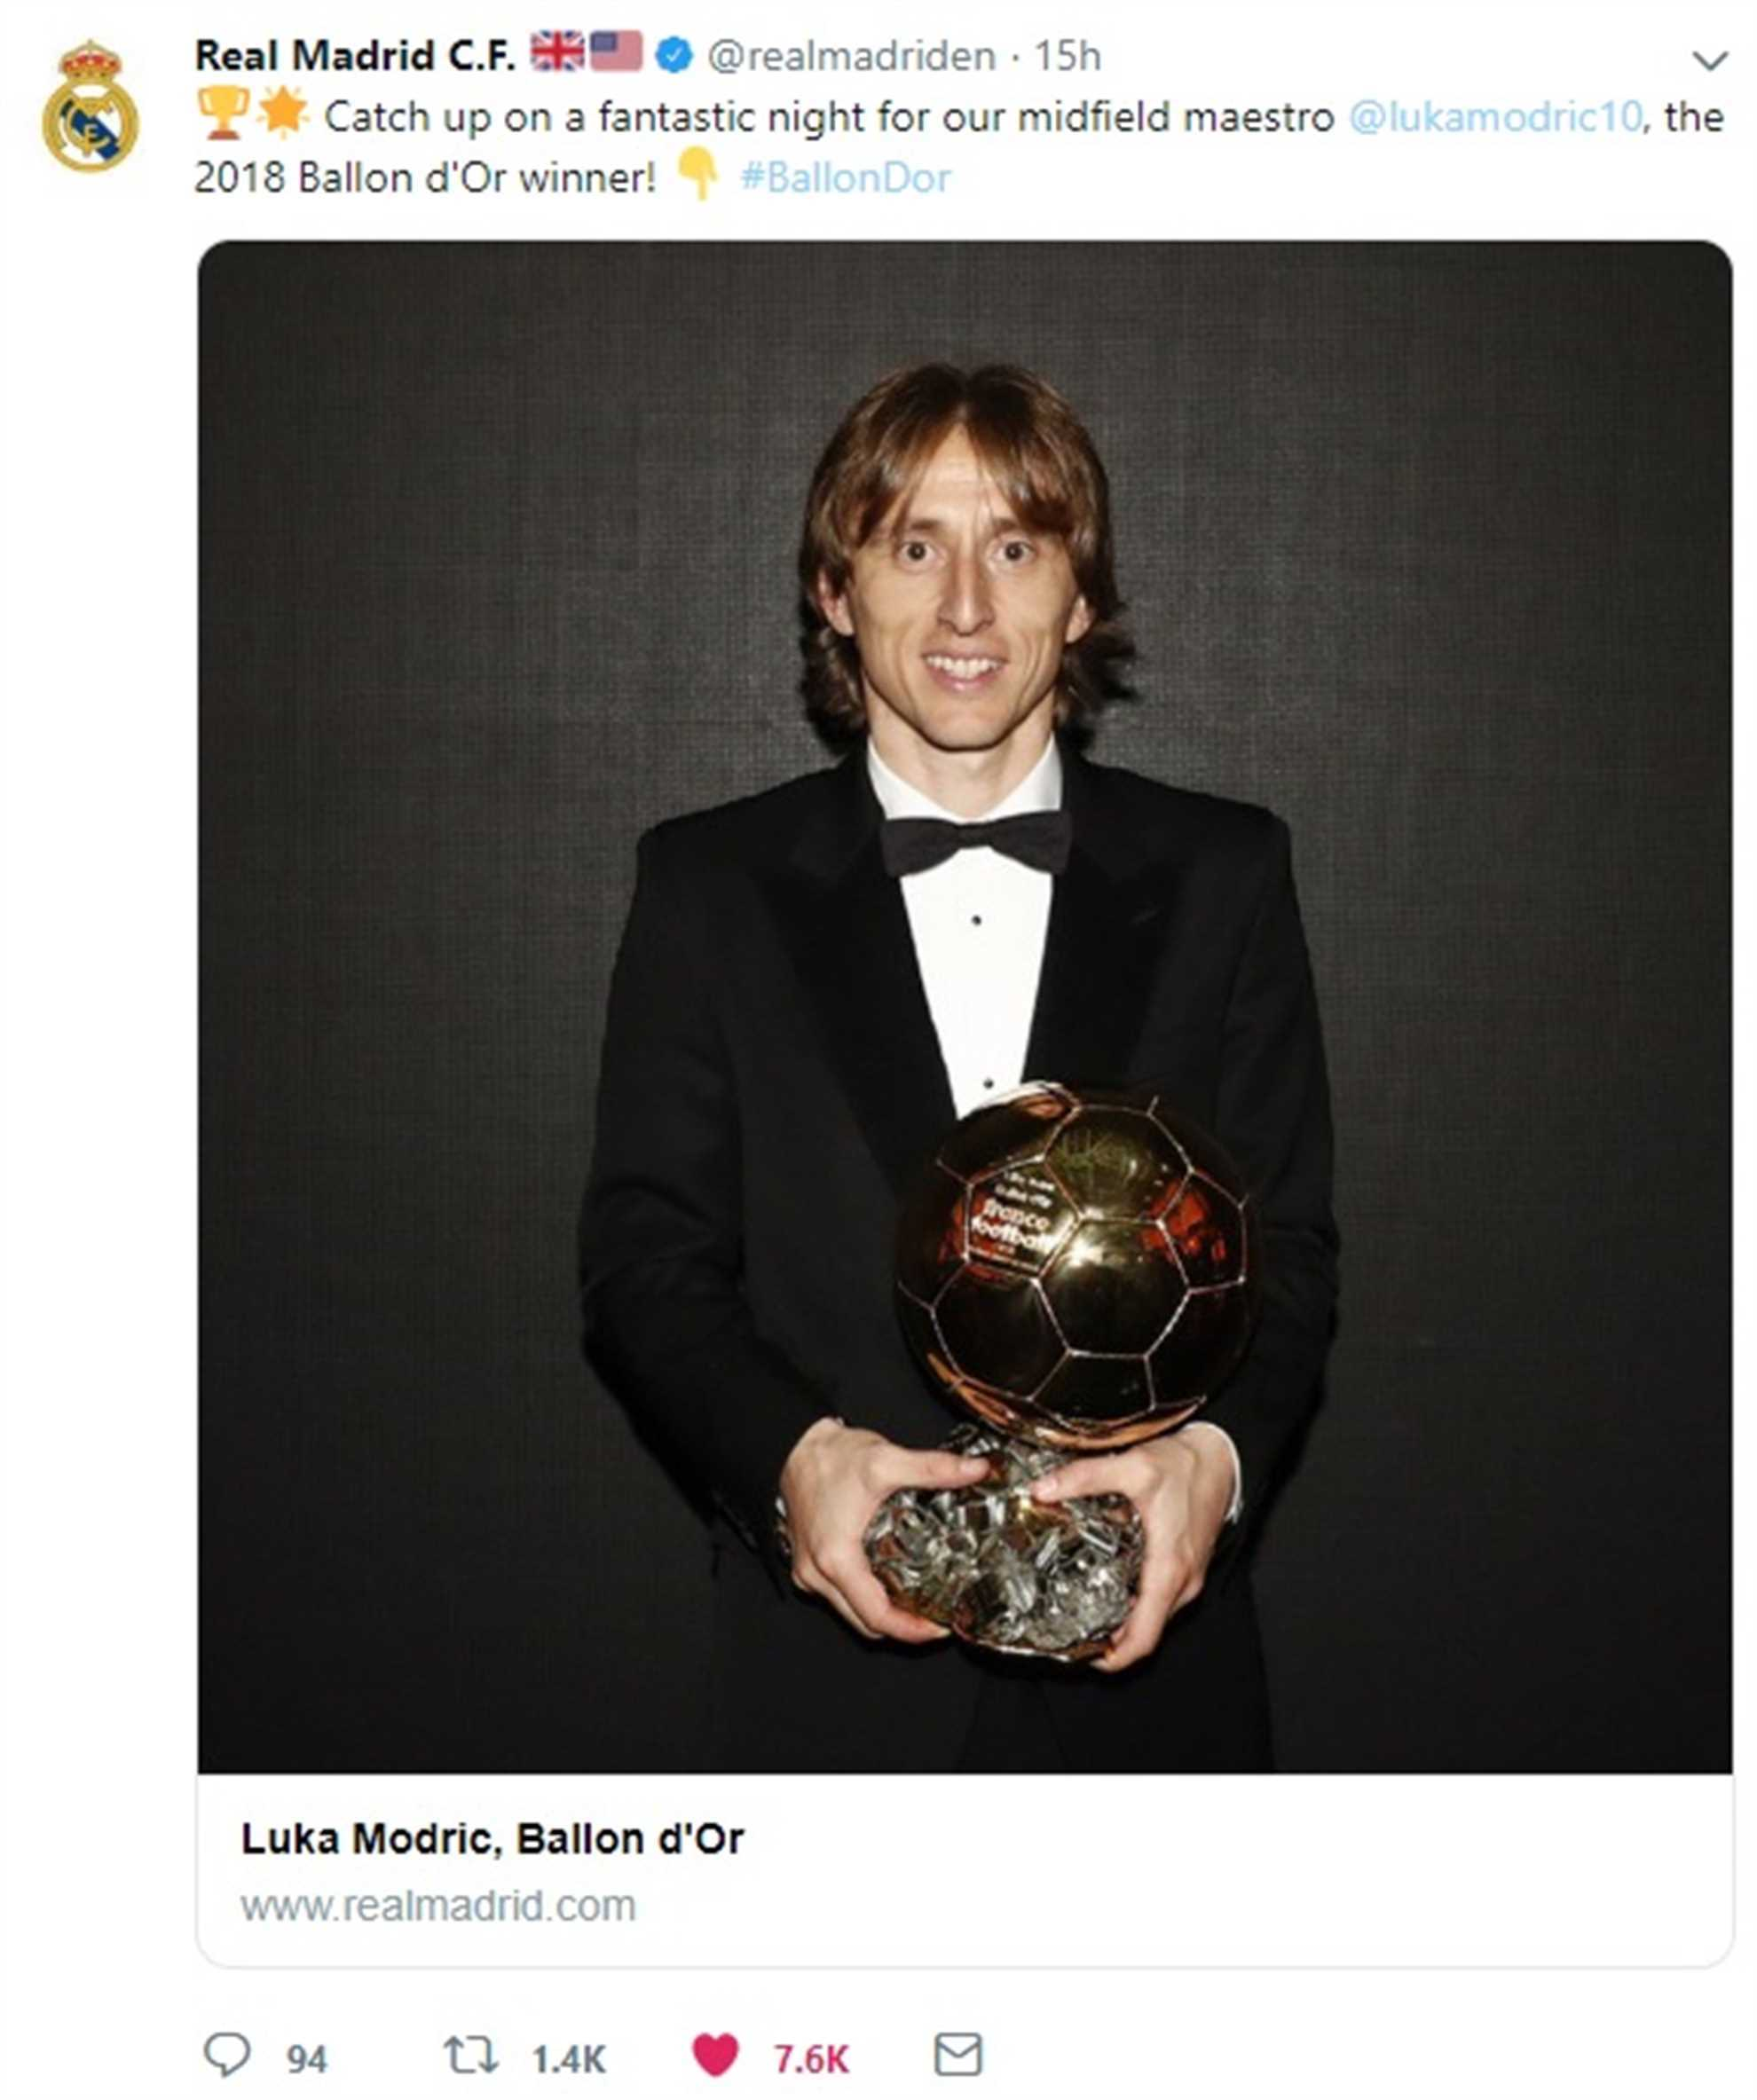 Real Madrod tweets about their midfield maestro Luka Modric